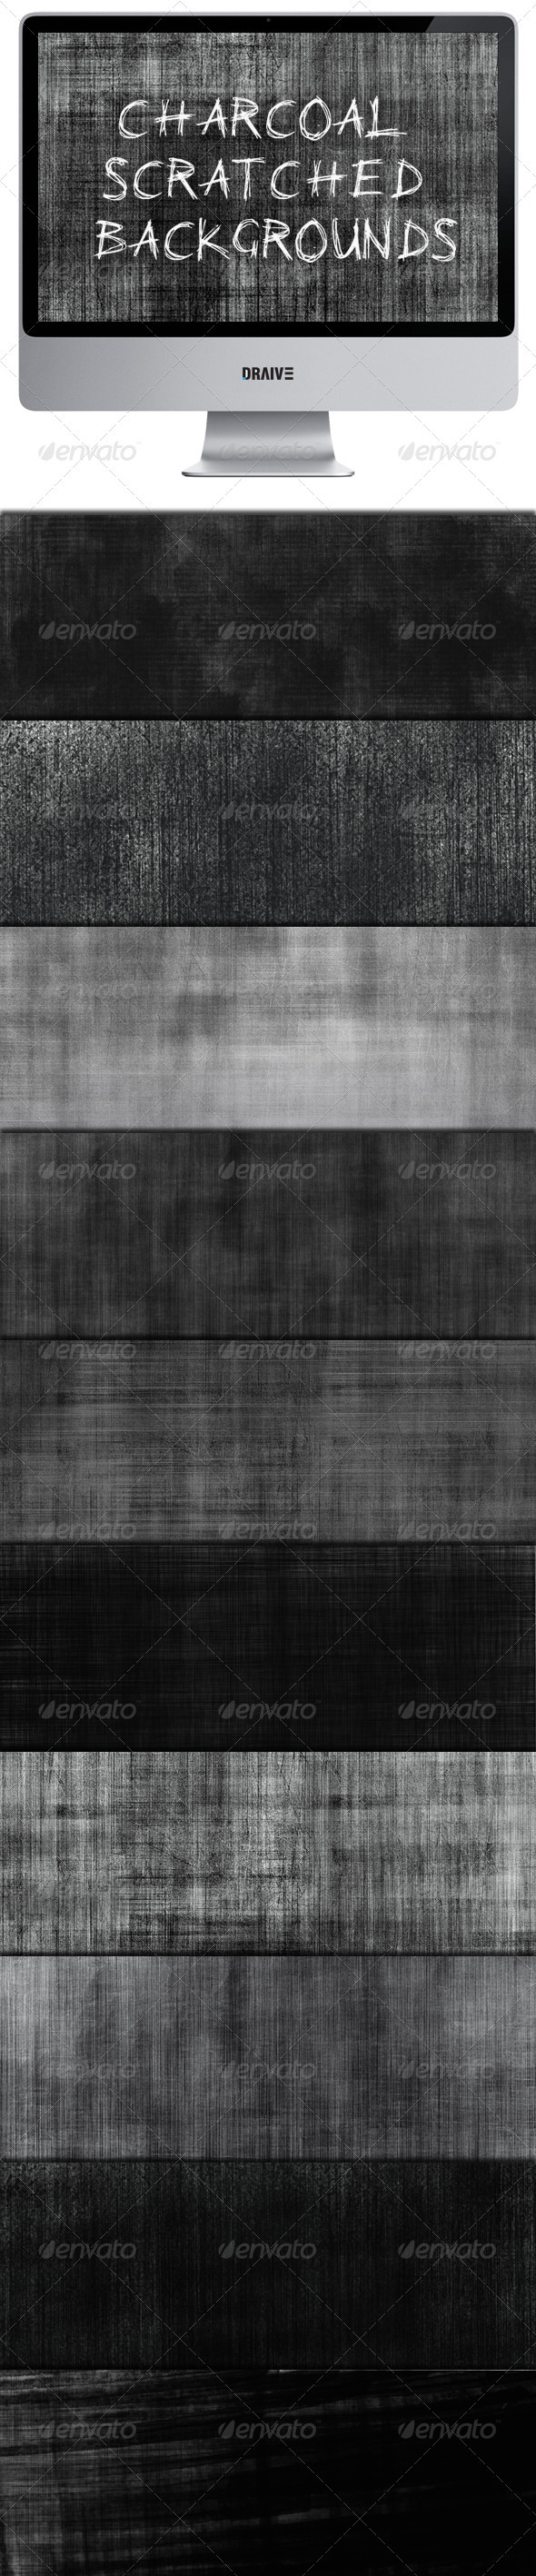 Charcoal Scratched Backgrounds - Backgrounds Graphics